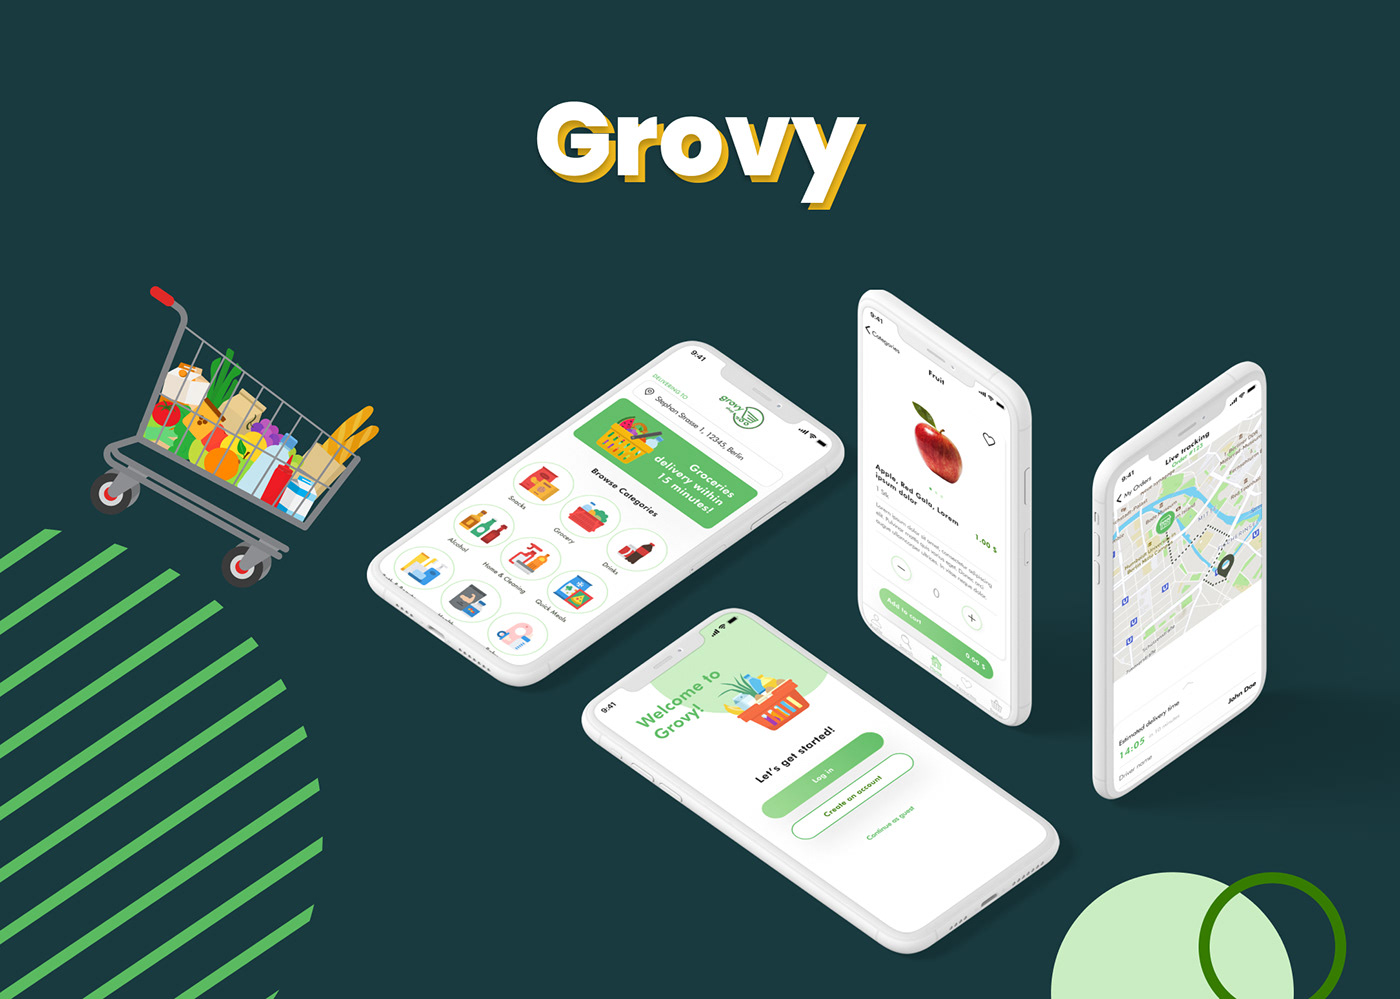 Grocery grovy mobile design Shopping UI user interface ux Food  Prototyping